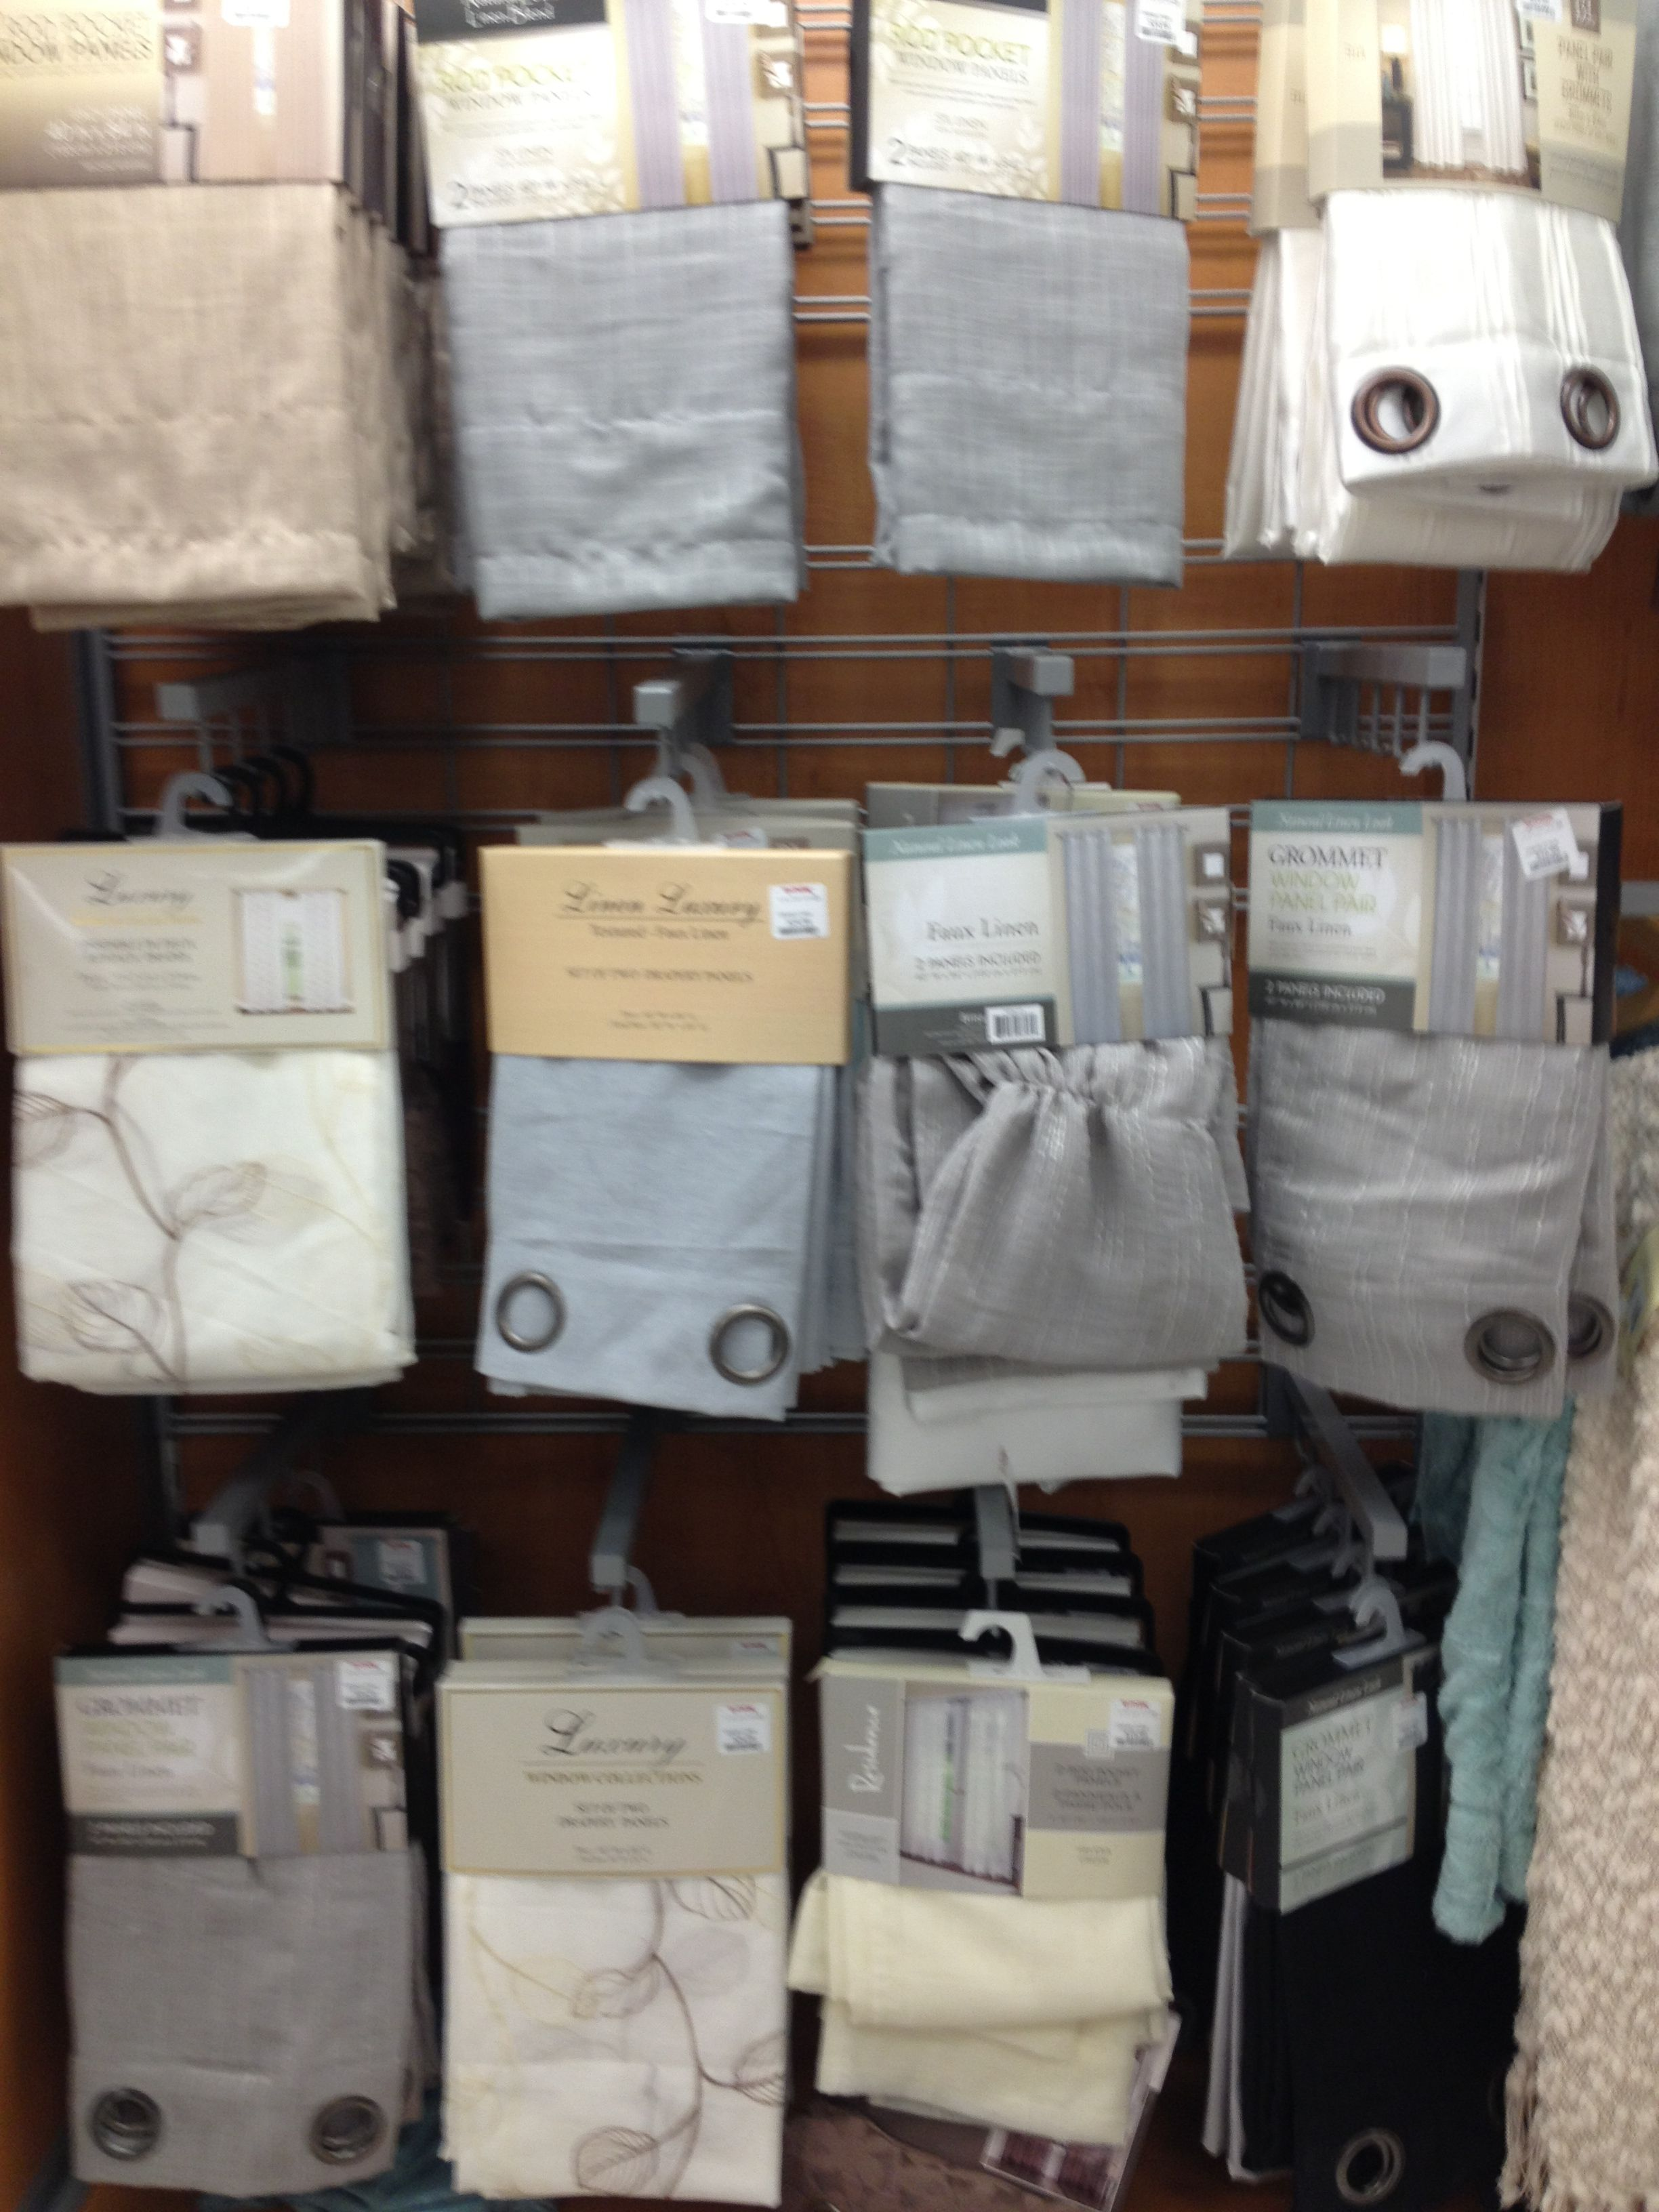 Curtains At Tj Maxx Gifts at TJ Maxx